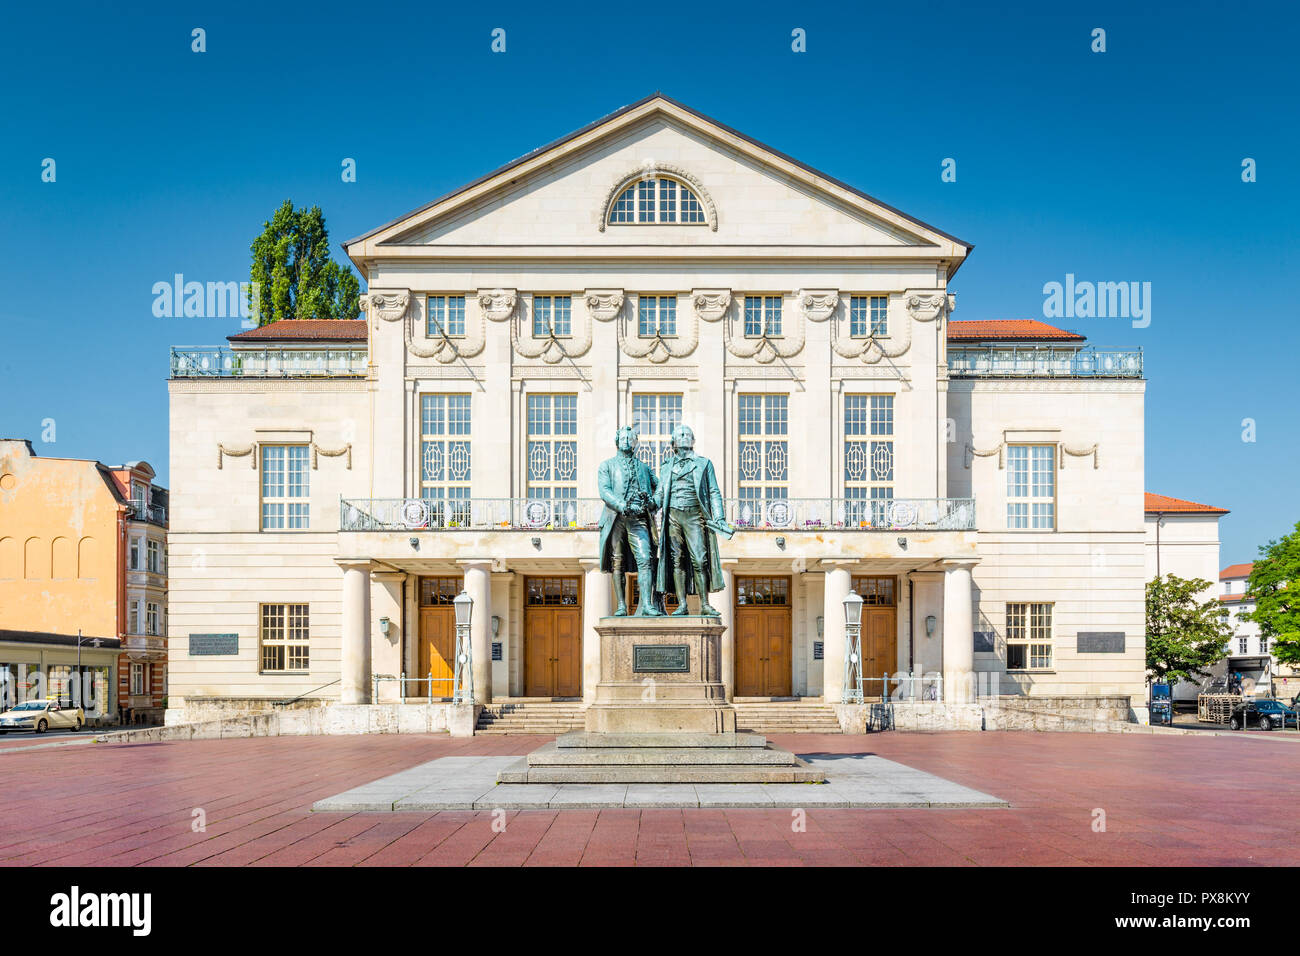 Classic view of famous Deutsches Nationaltheater with Goethe-Schiller monument on a beautiful sunny day with blue sky in Weimar, Thuringia, Germany - Stock Image